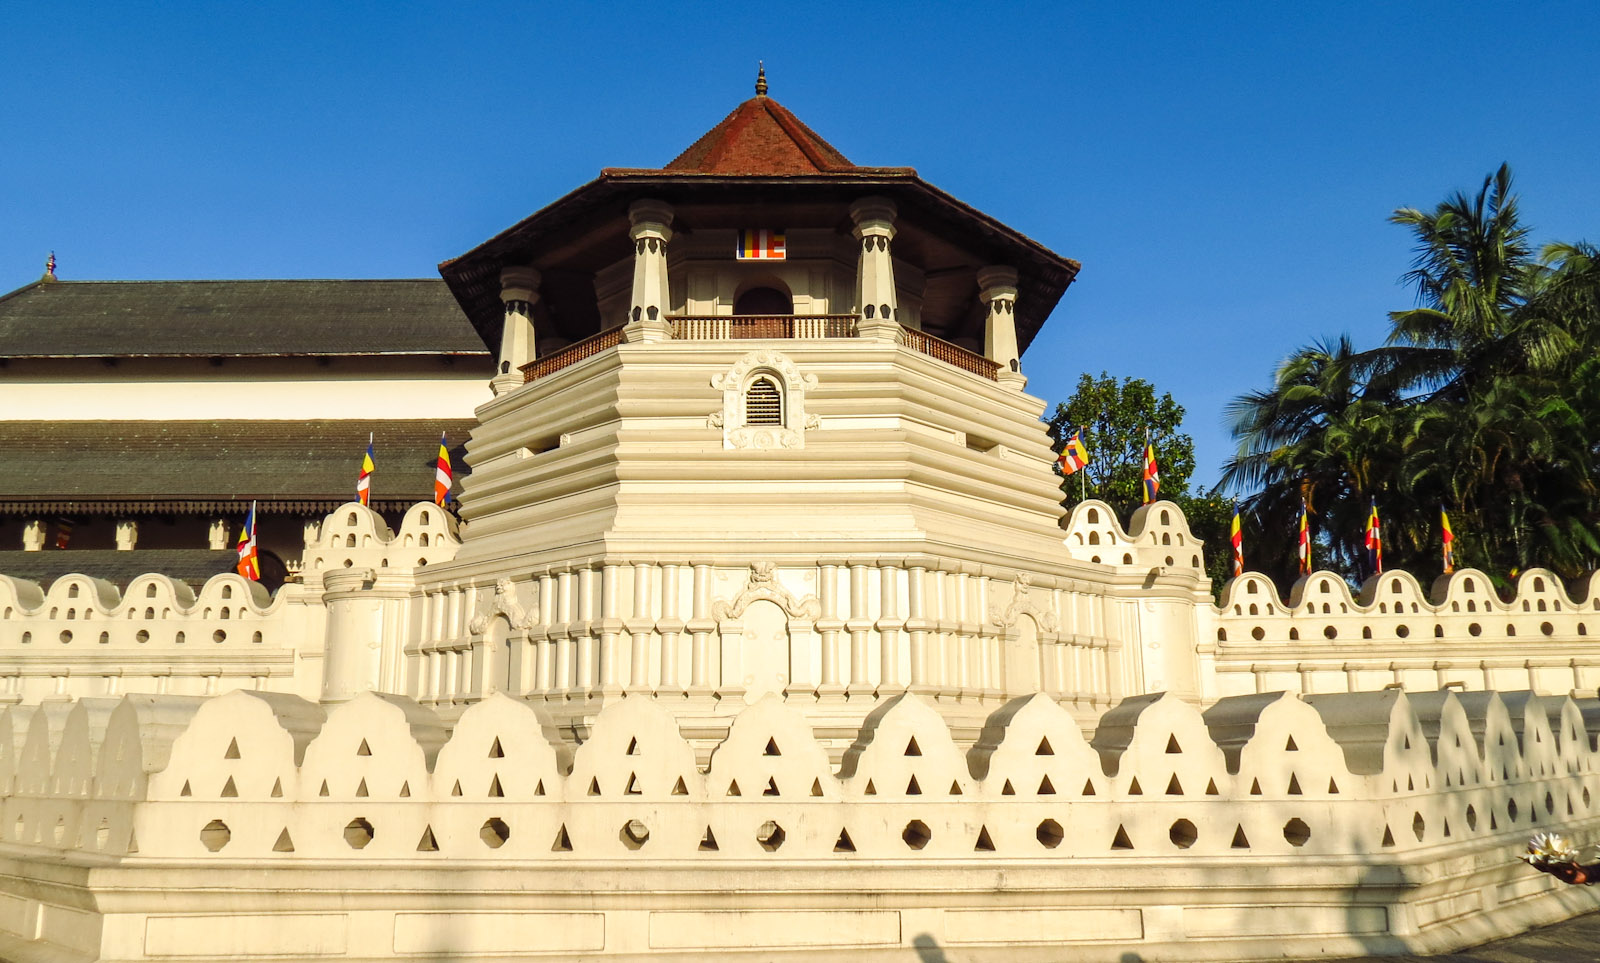 Temple of the Sacred Tooth Relic Image Credit:flashpackatforty.com